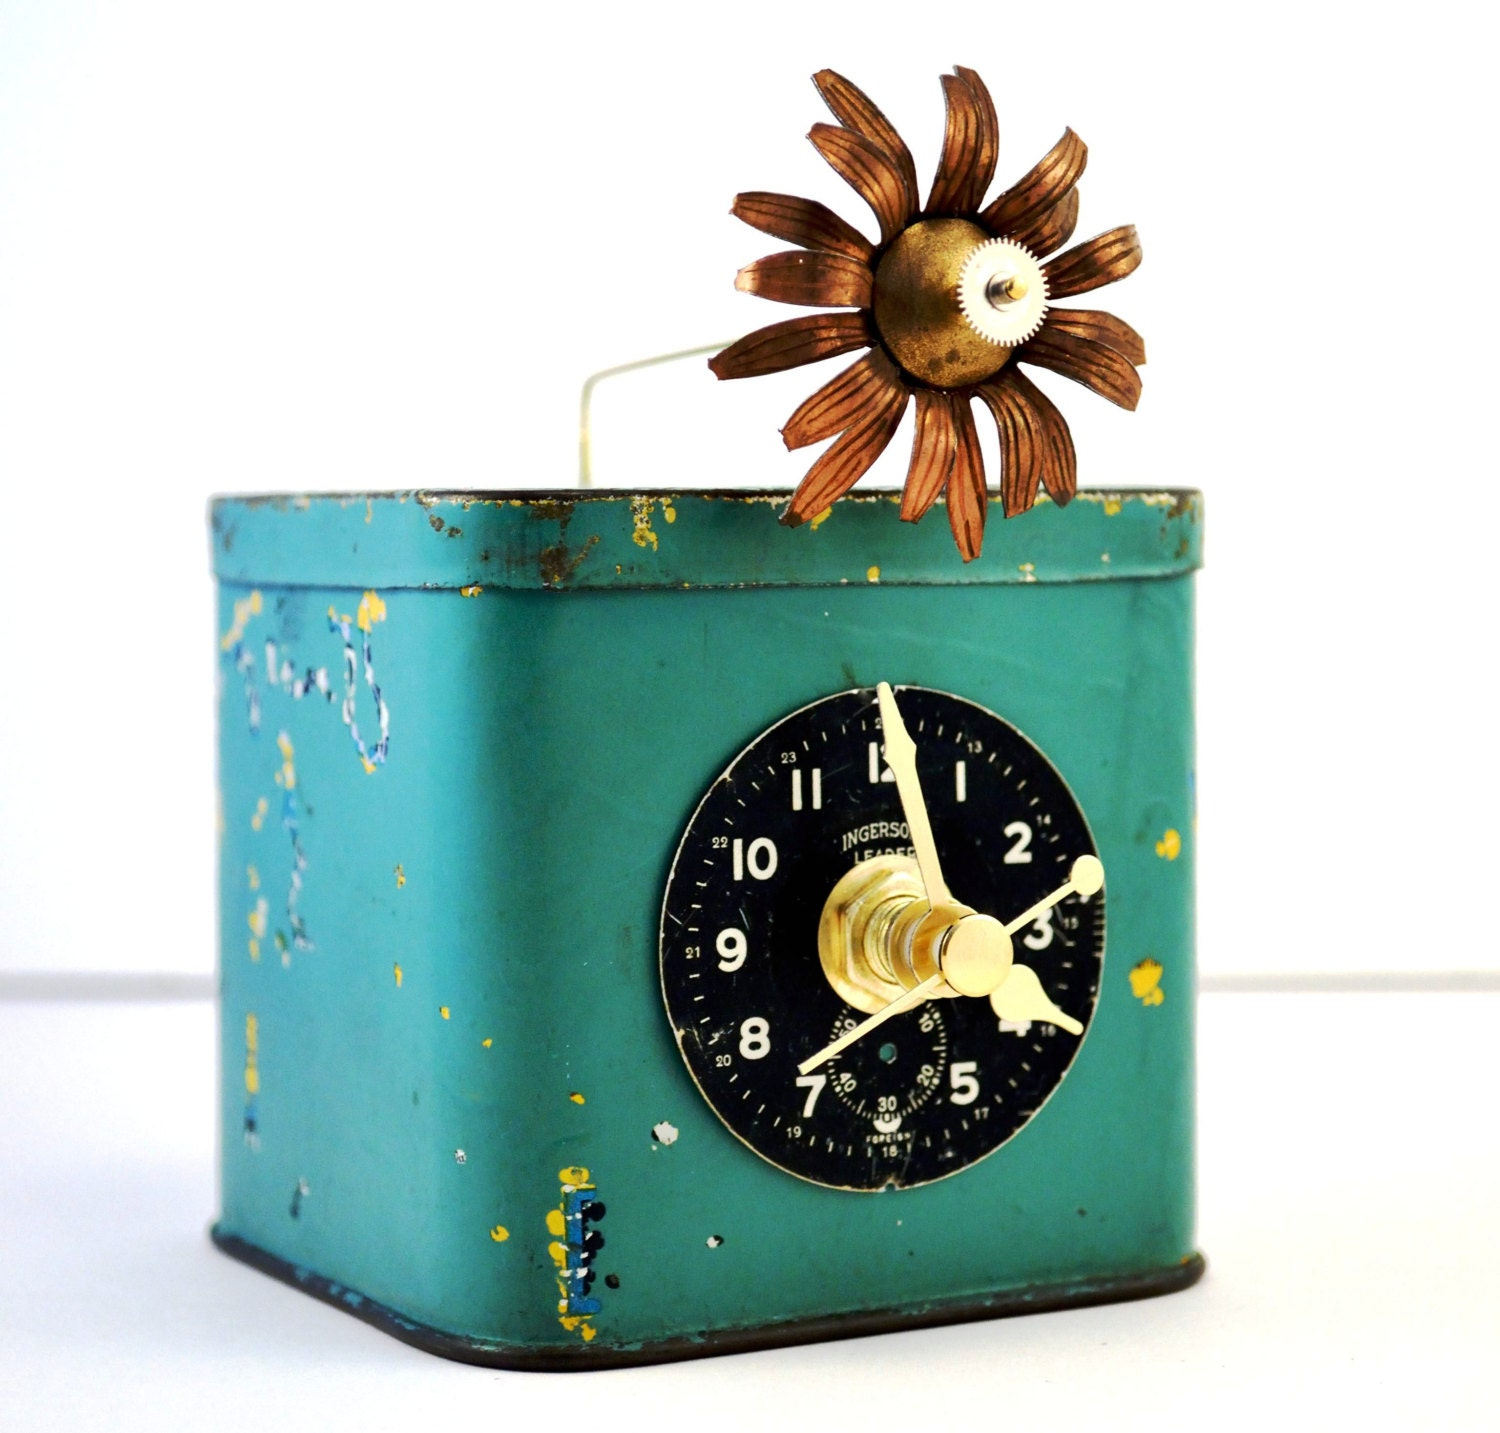 Desk Clock, Mantel Clock, Rustic, Steampunk, Home Decor, Vintage Tin - Chanchala